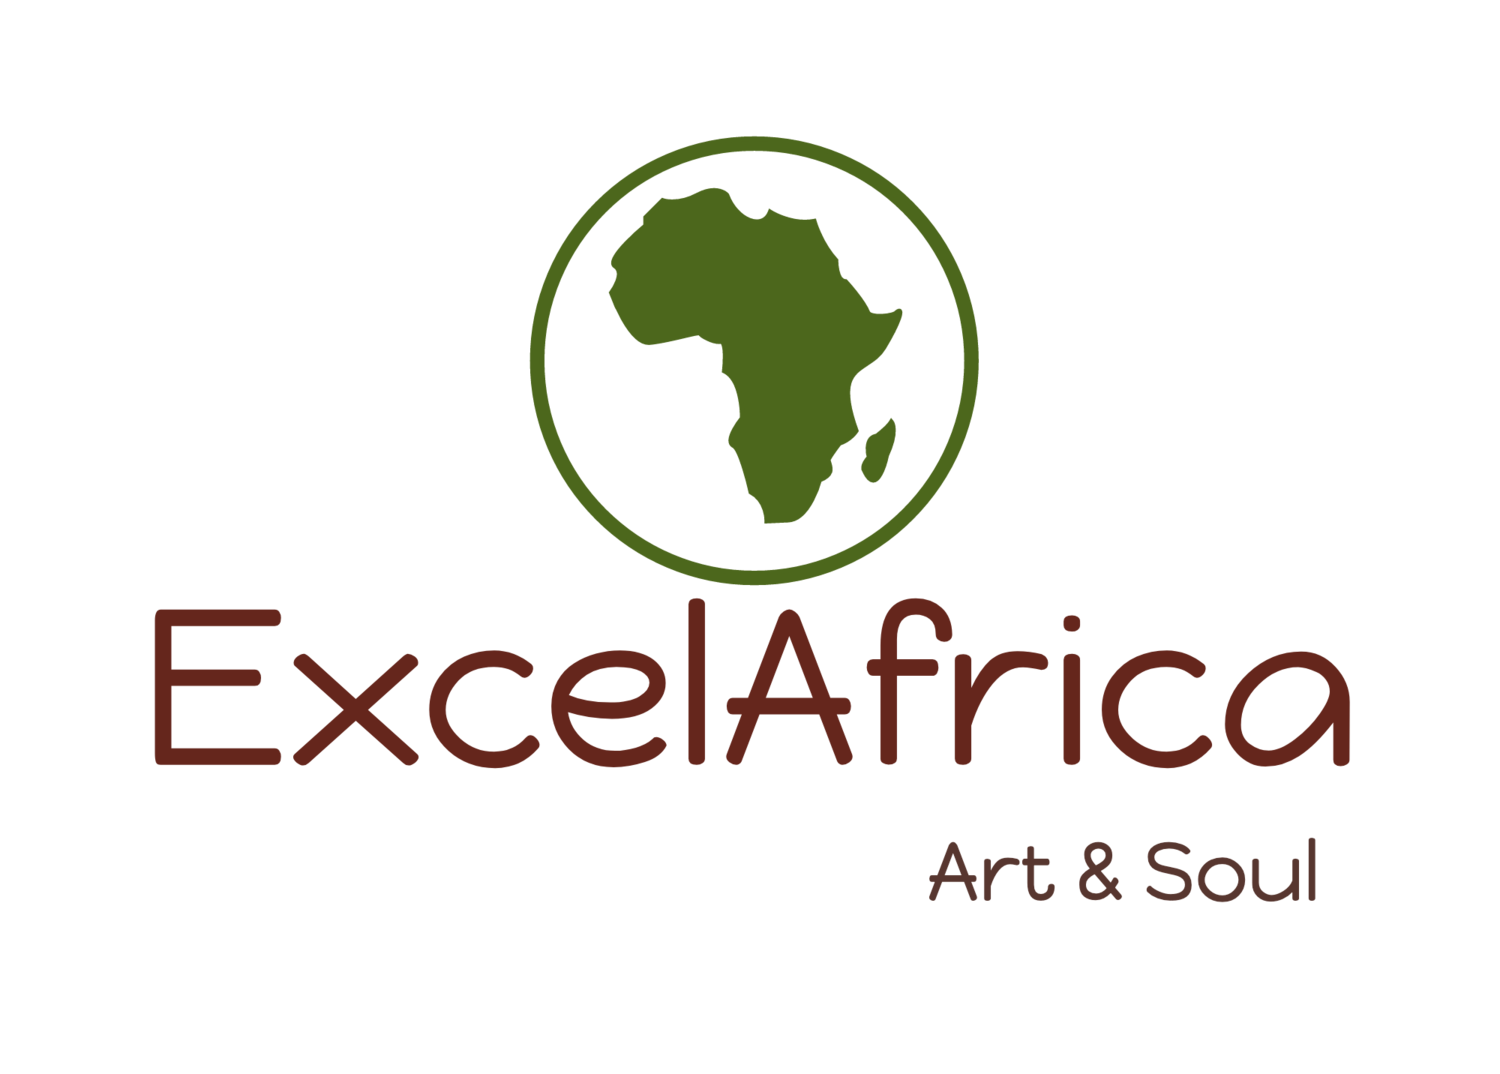 Excel Africa